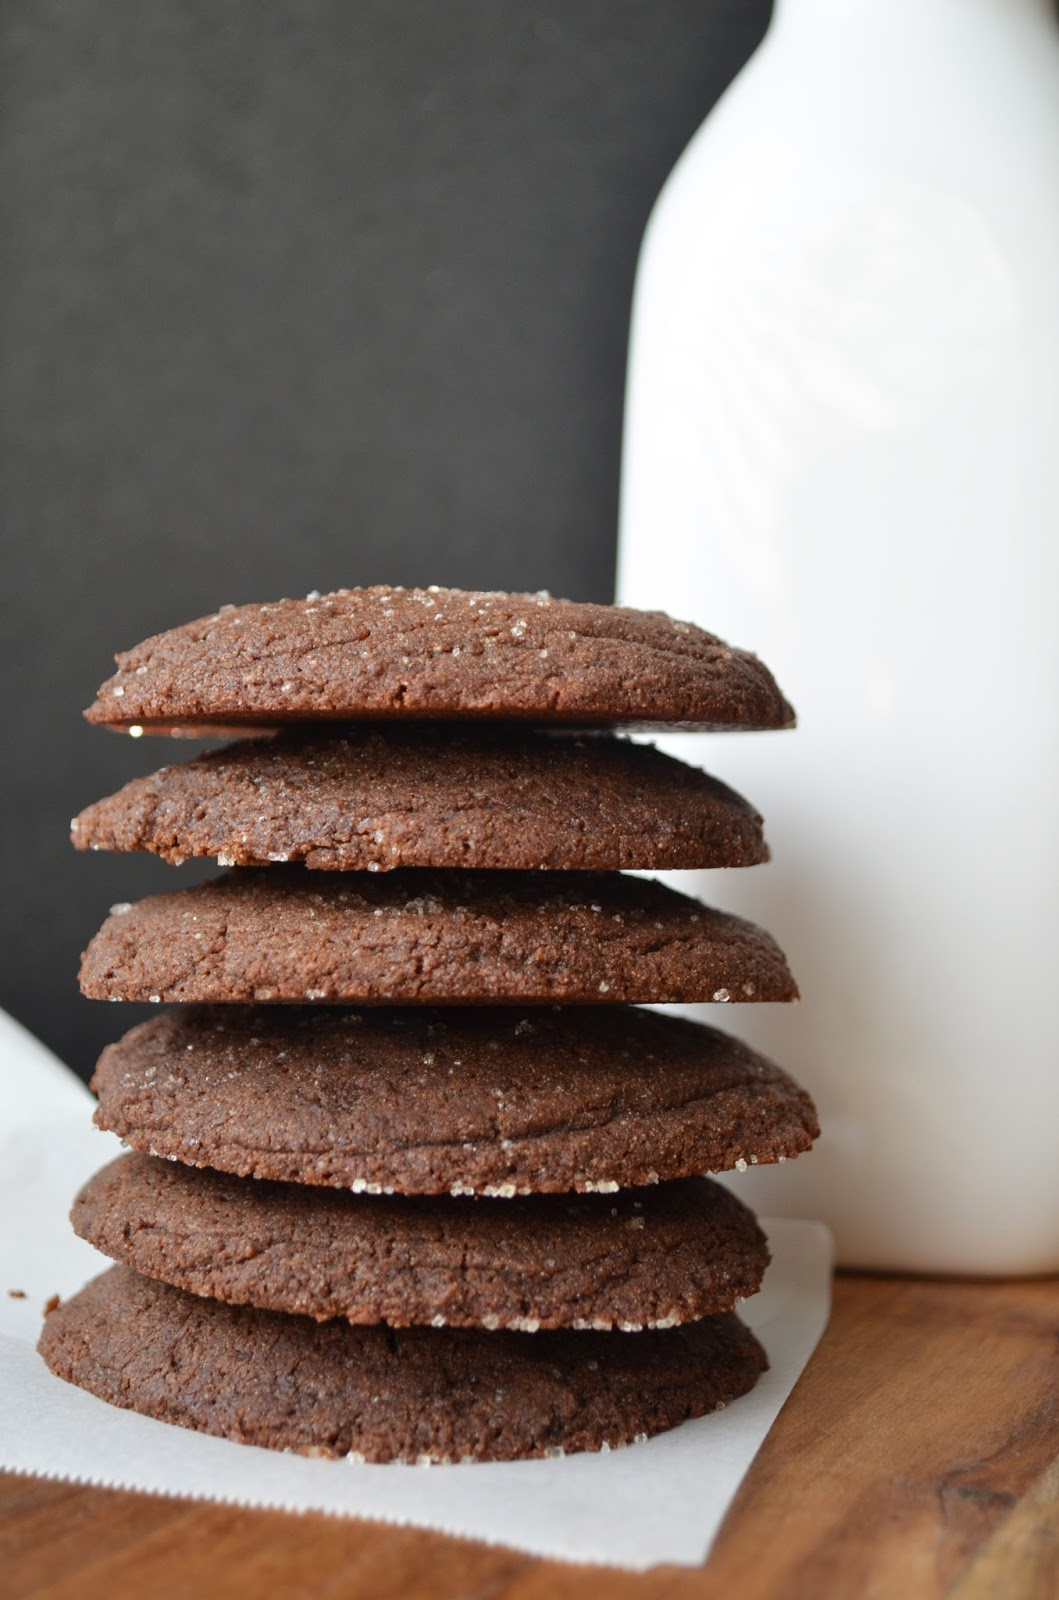 Gluten Free Peanut Butter Filled Chocolate Cookies